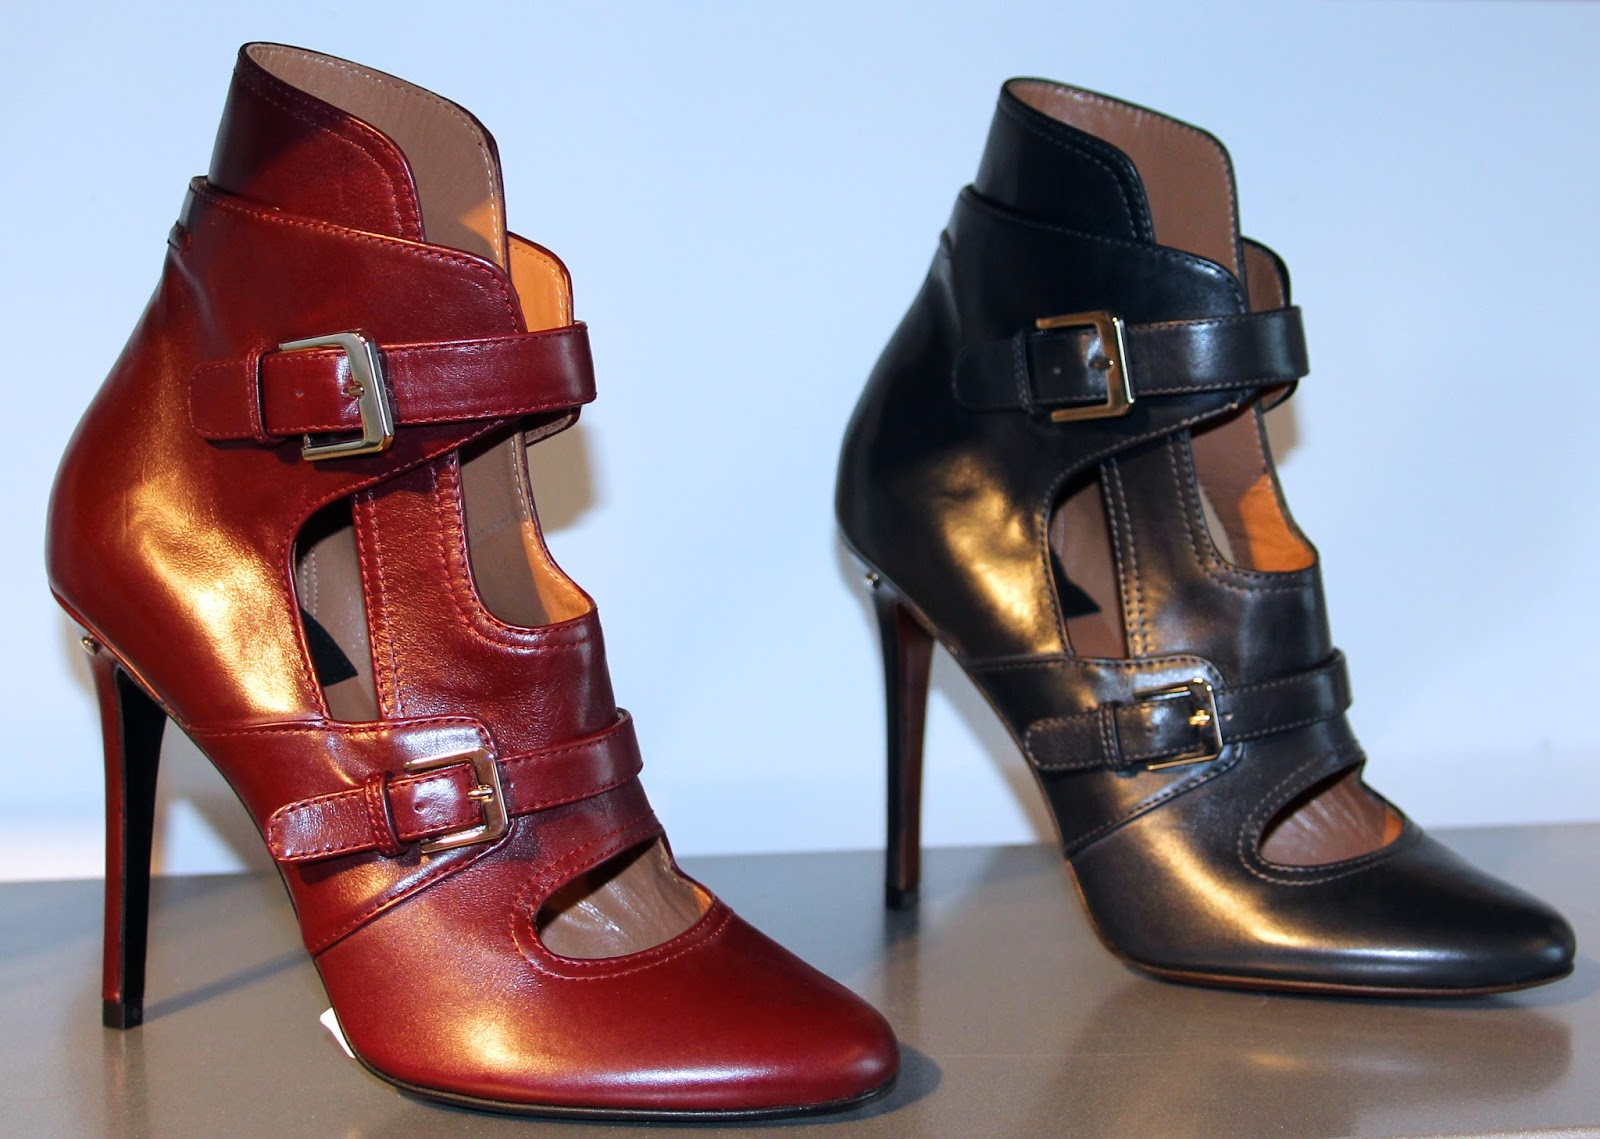 1347b4c6cb4 Laurence Dacade+Tania Spinelli Footwear-Shoes/Boots Fall 2013